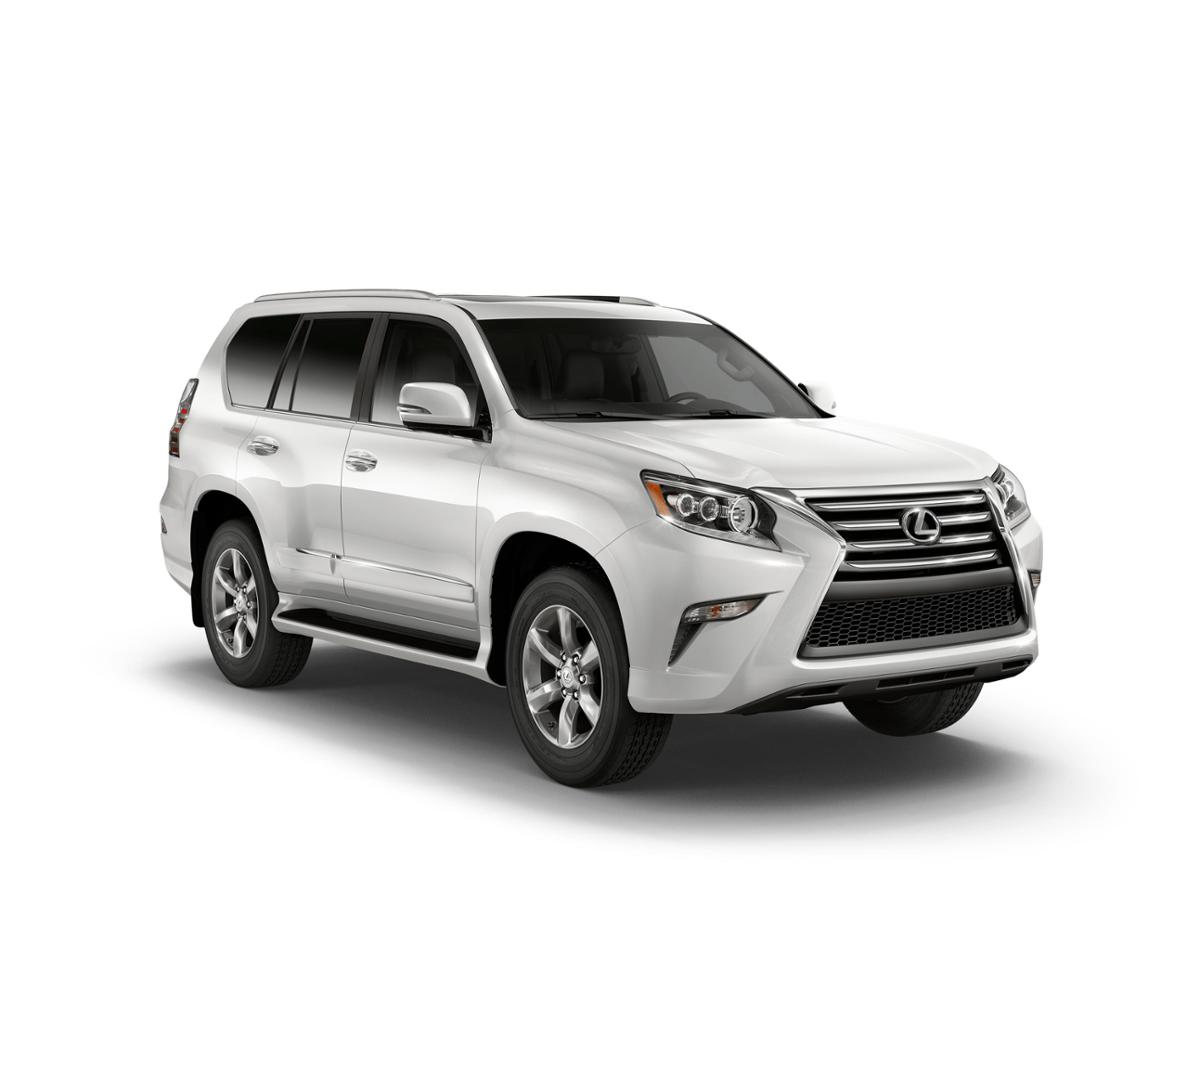 2018 Lexus GX 460 Vehicle Photo in Santa Barbara, CA 93105